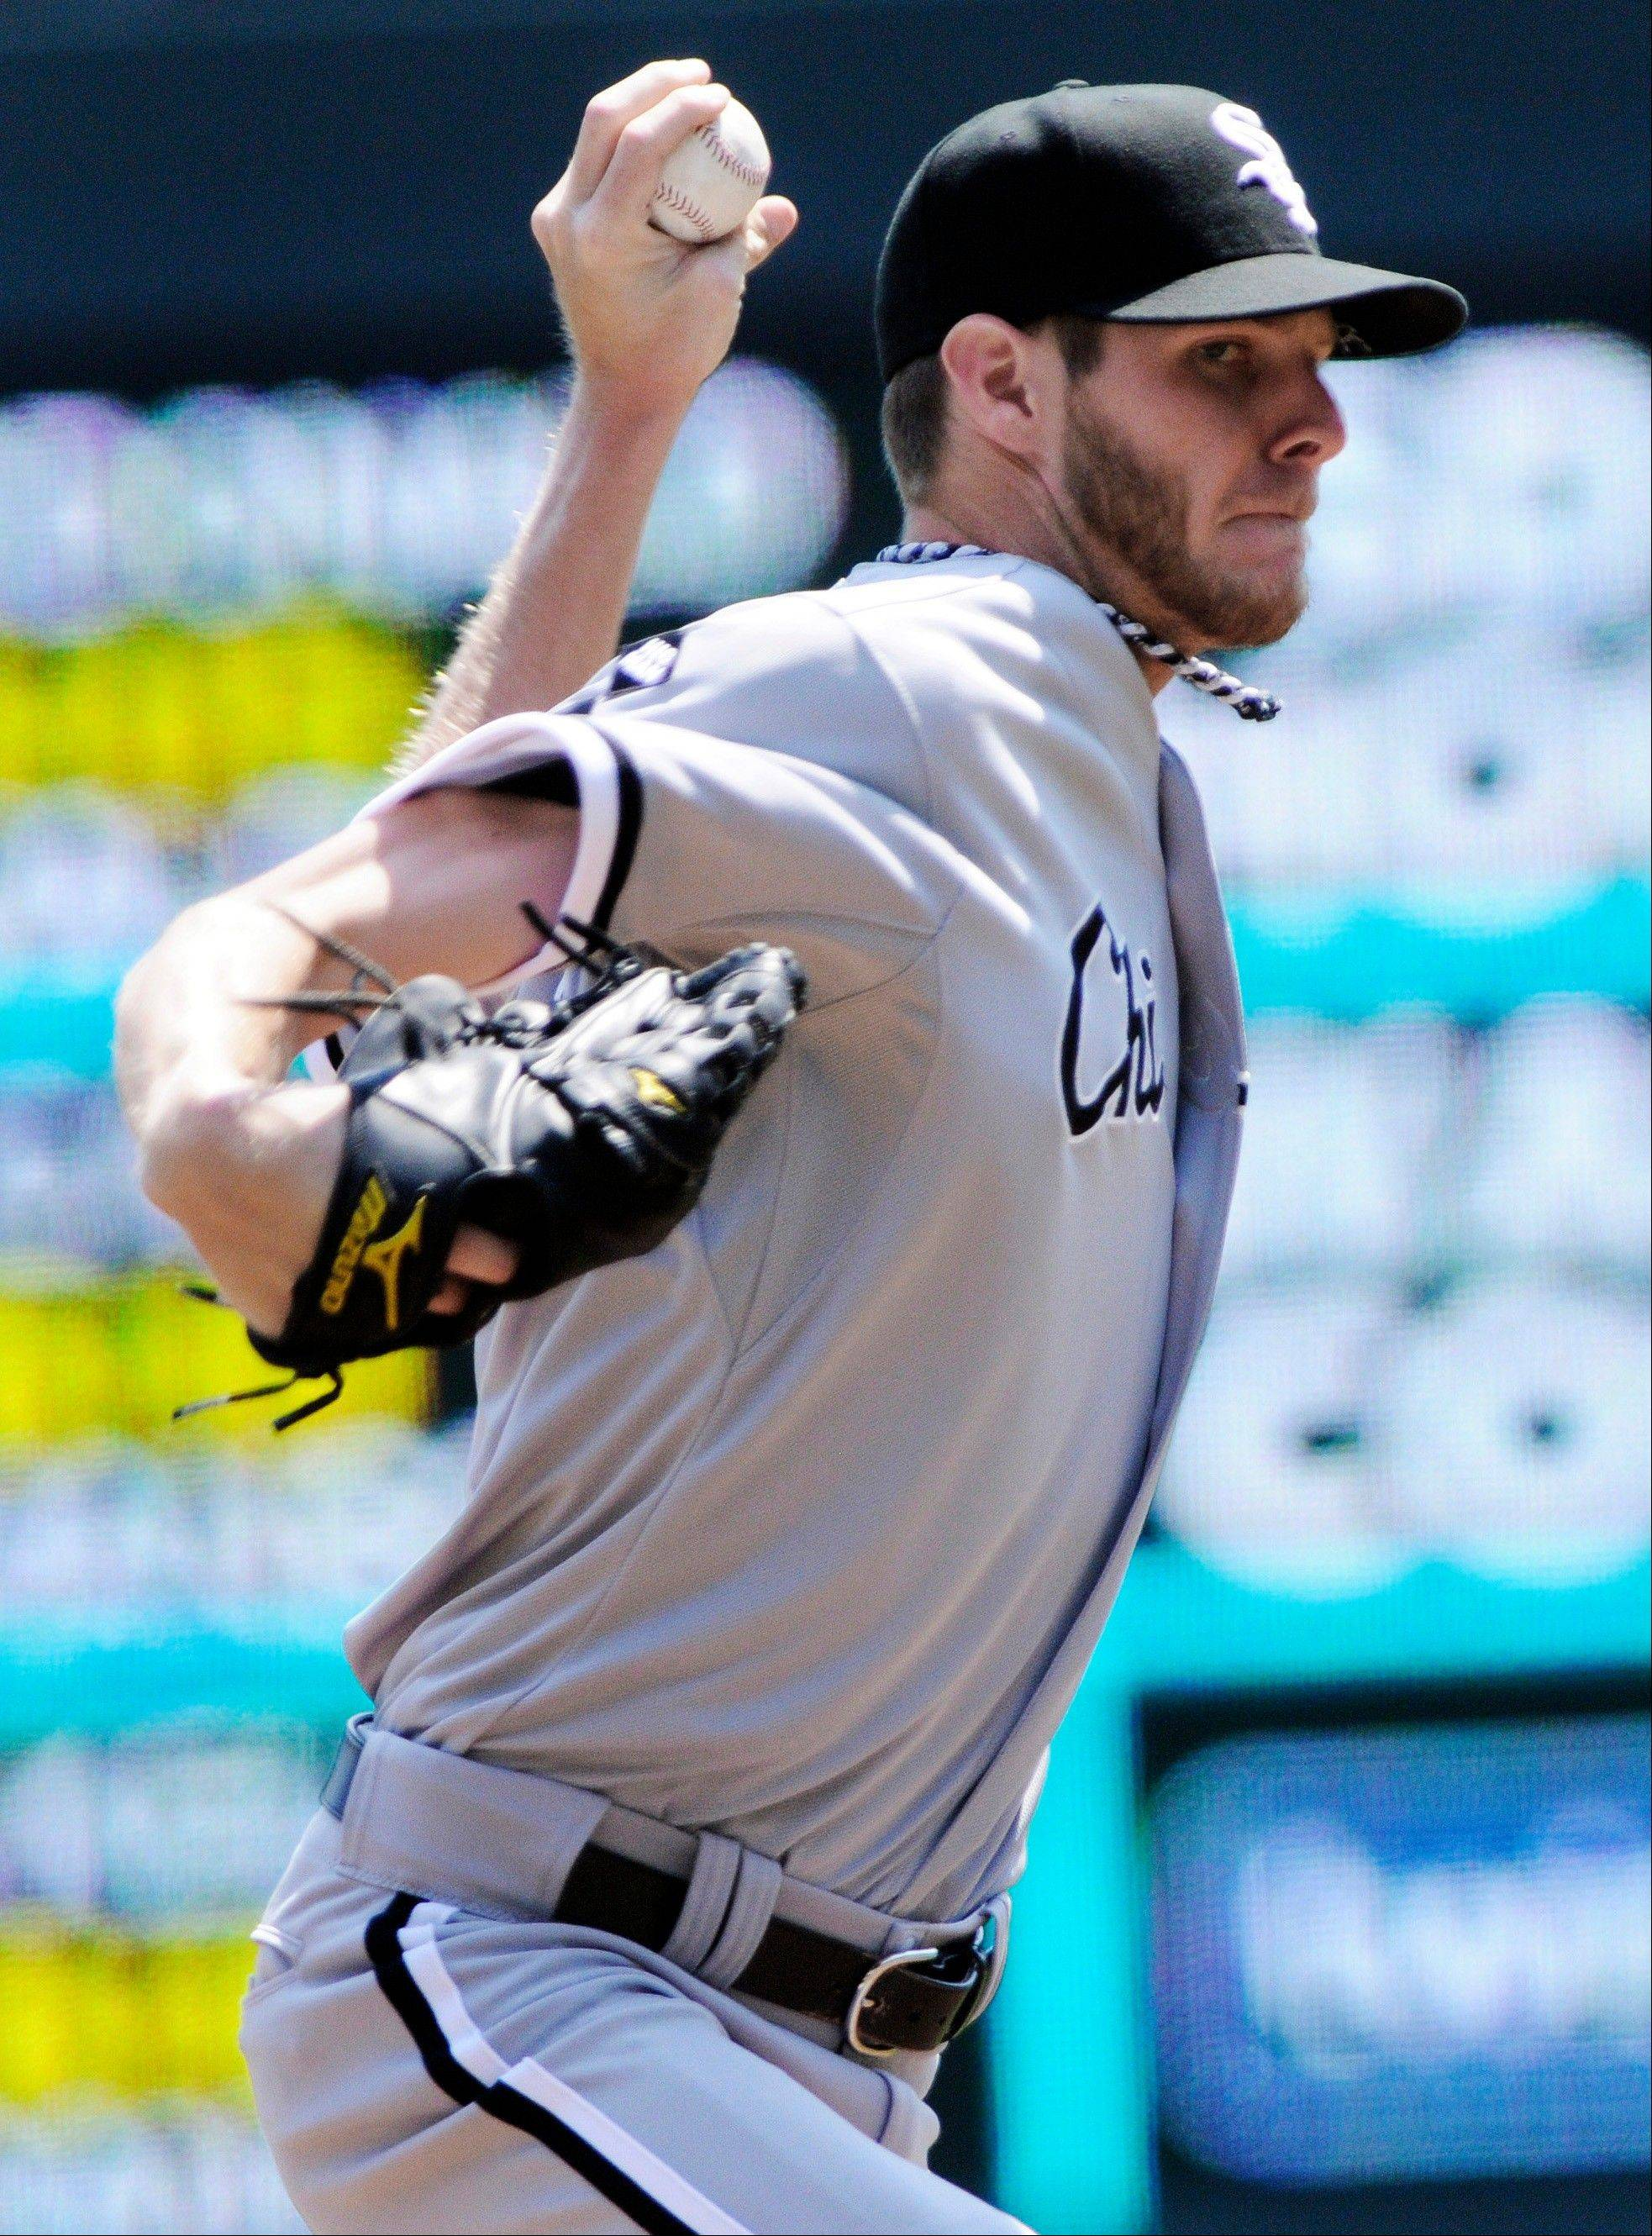 White Sox pitcher Chris Sale throws against the Minnesota Twins in the first inning Wednesday in Minneapolis.